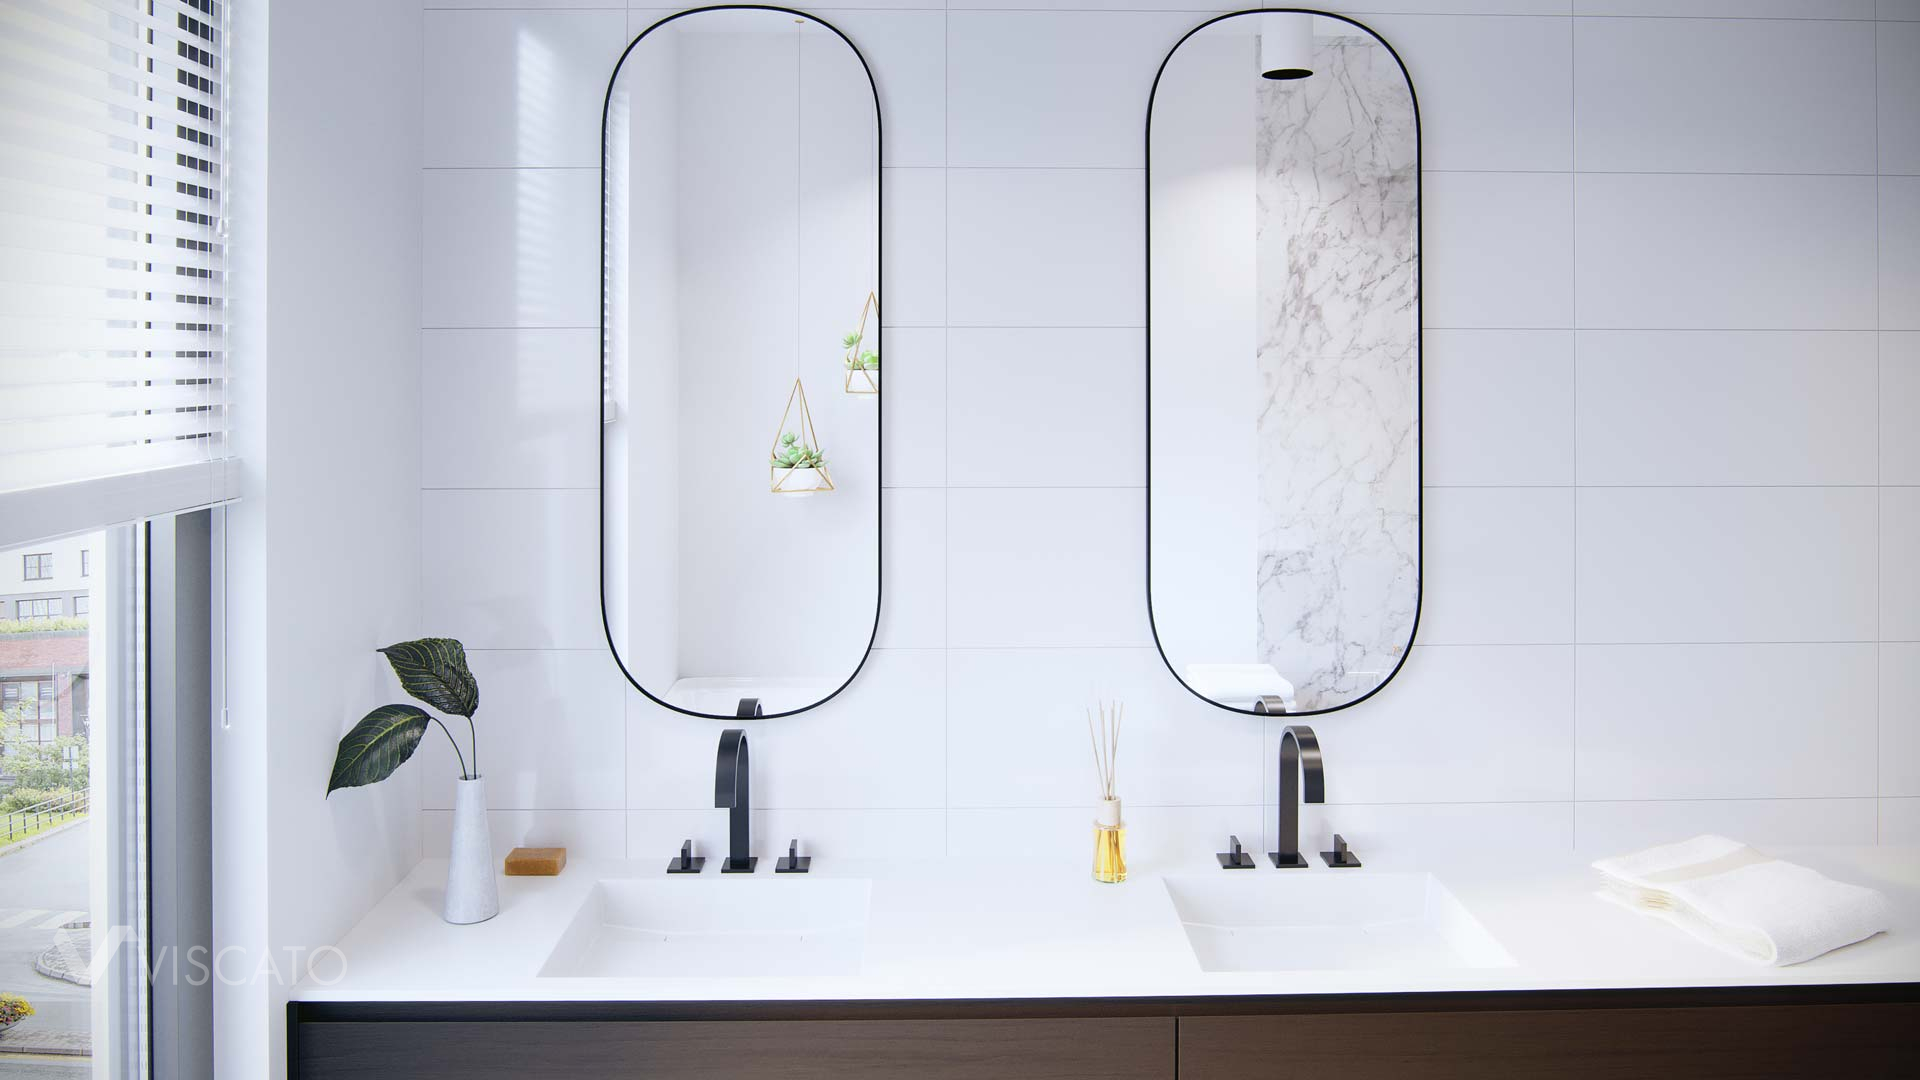 Big mirrors in the bathroom, 3D interior visualizations